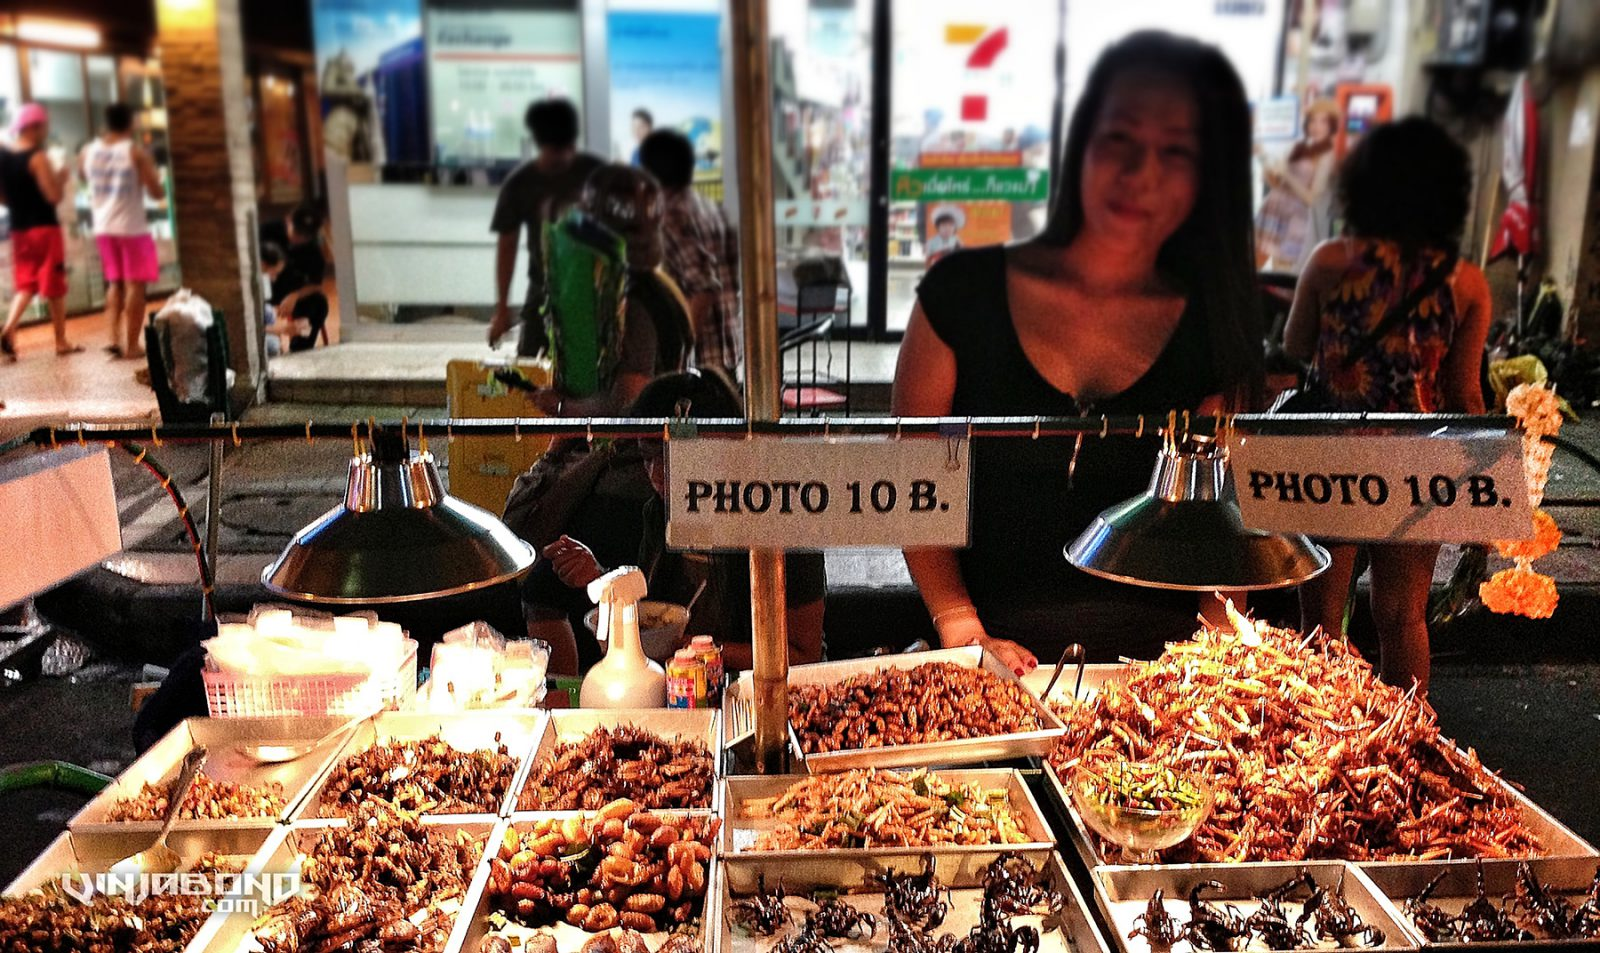 - Fried Scorpions, Grasshoppers and More in Bangkok -